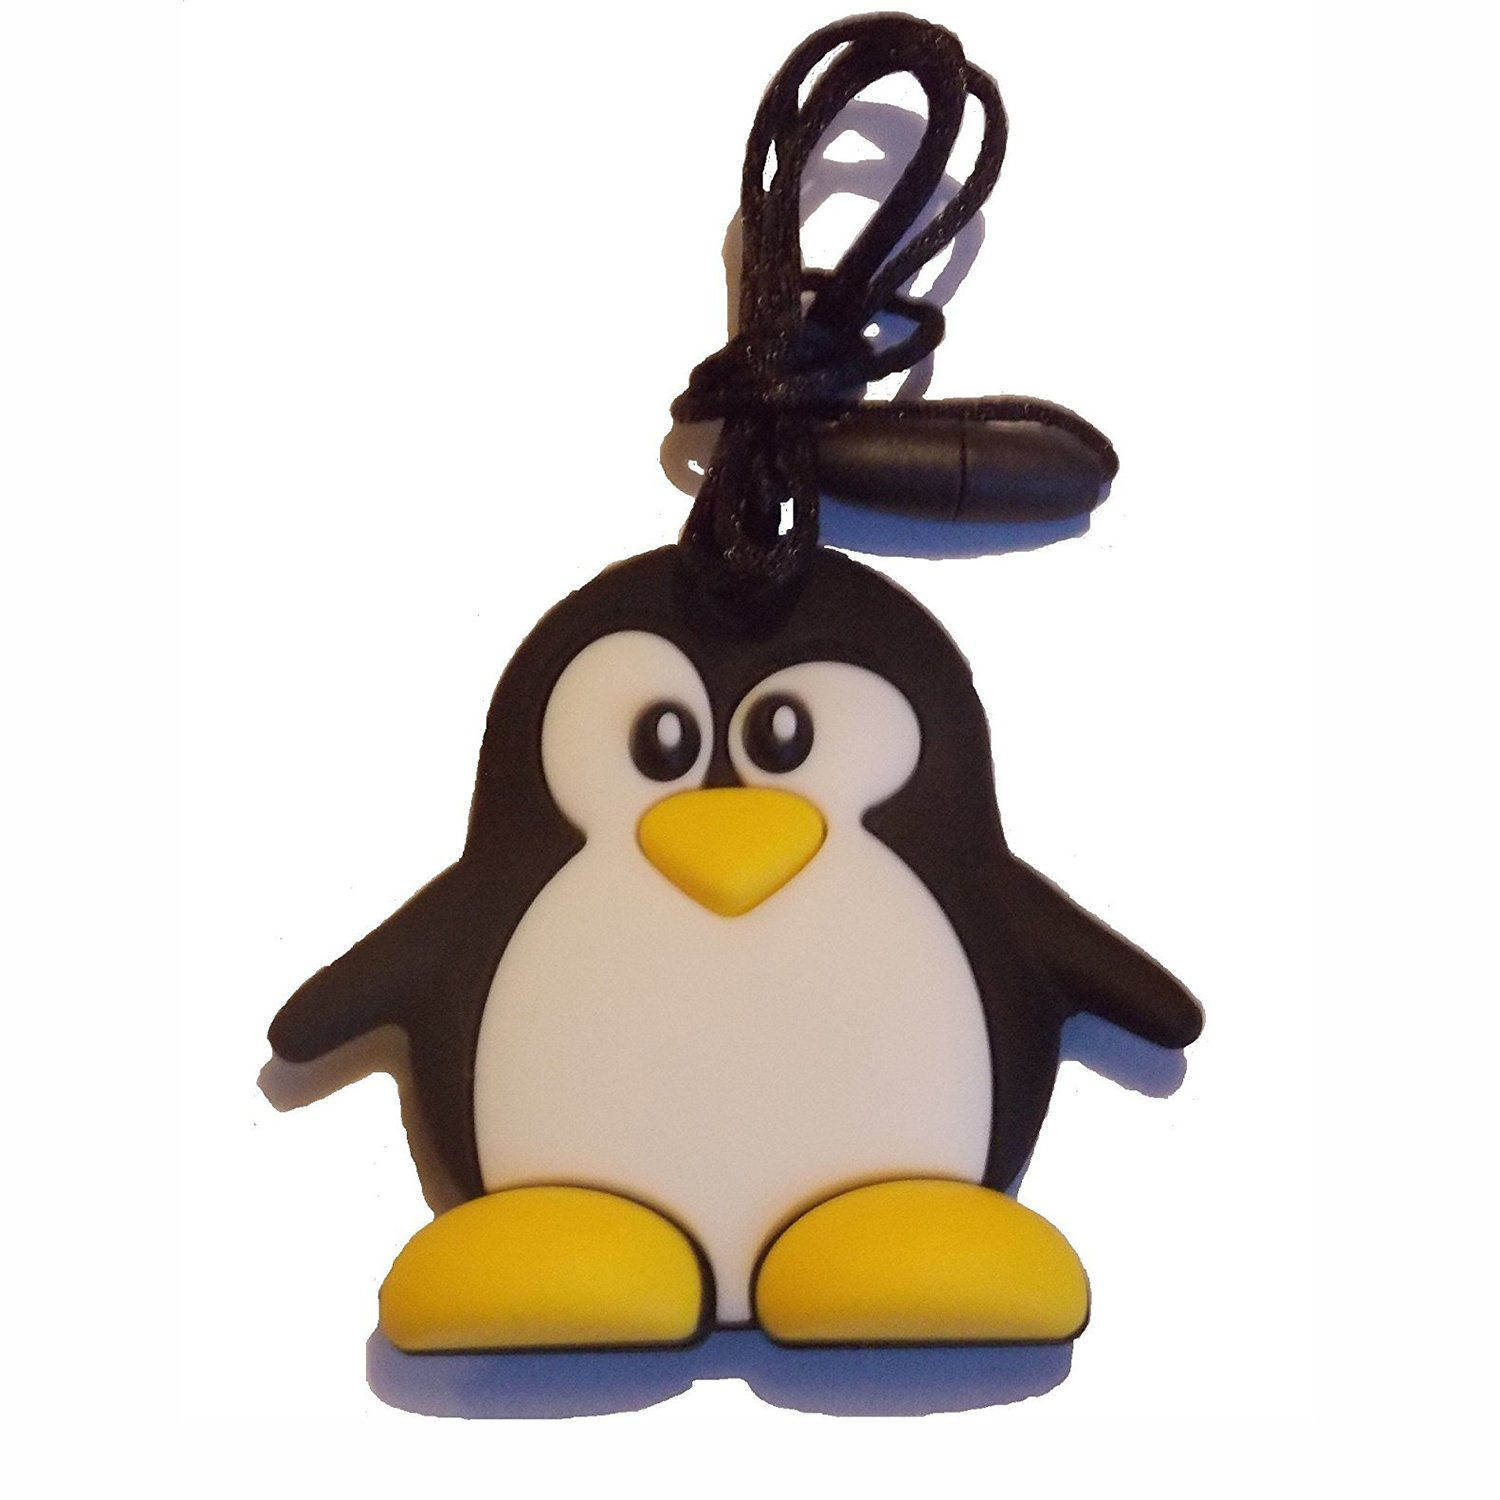 FDA Compliant Soft Nursing Necklace For Baby And Toddler BPA /& Phthalates Free Inchant Chewable Penguin Silicone Teething Pendant Toy Gum Massager Teether Necklace